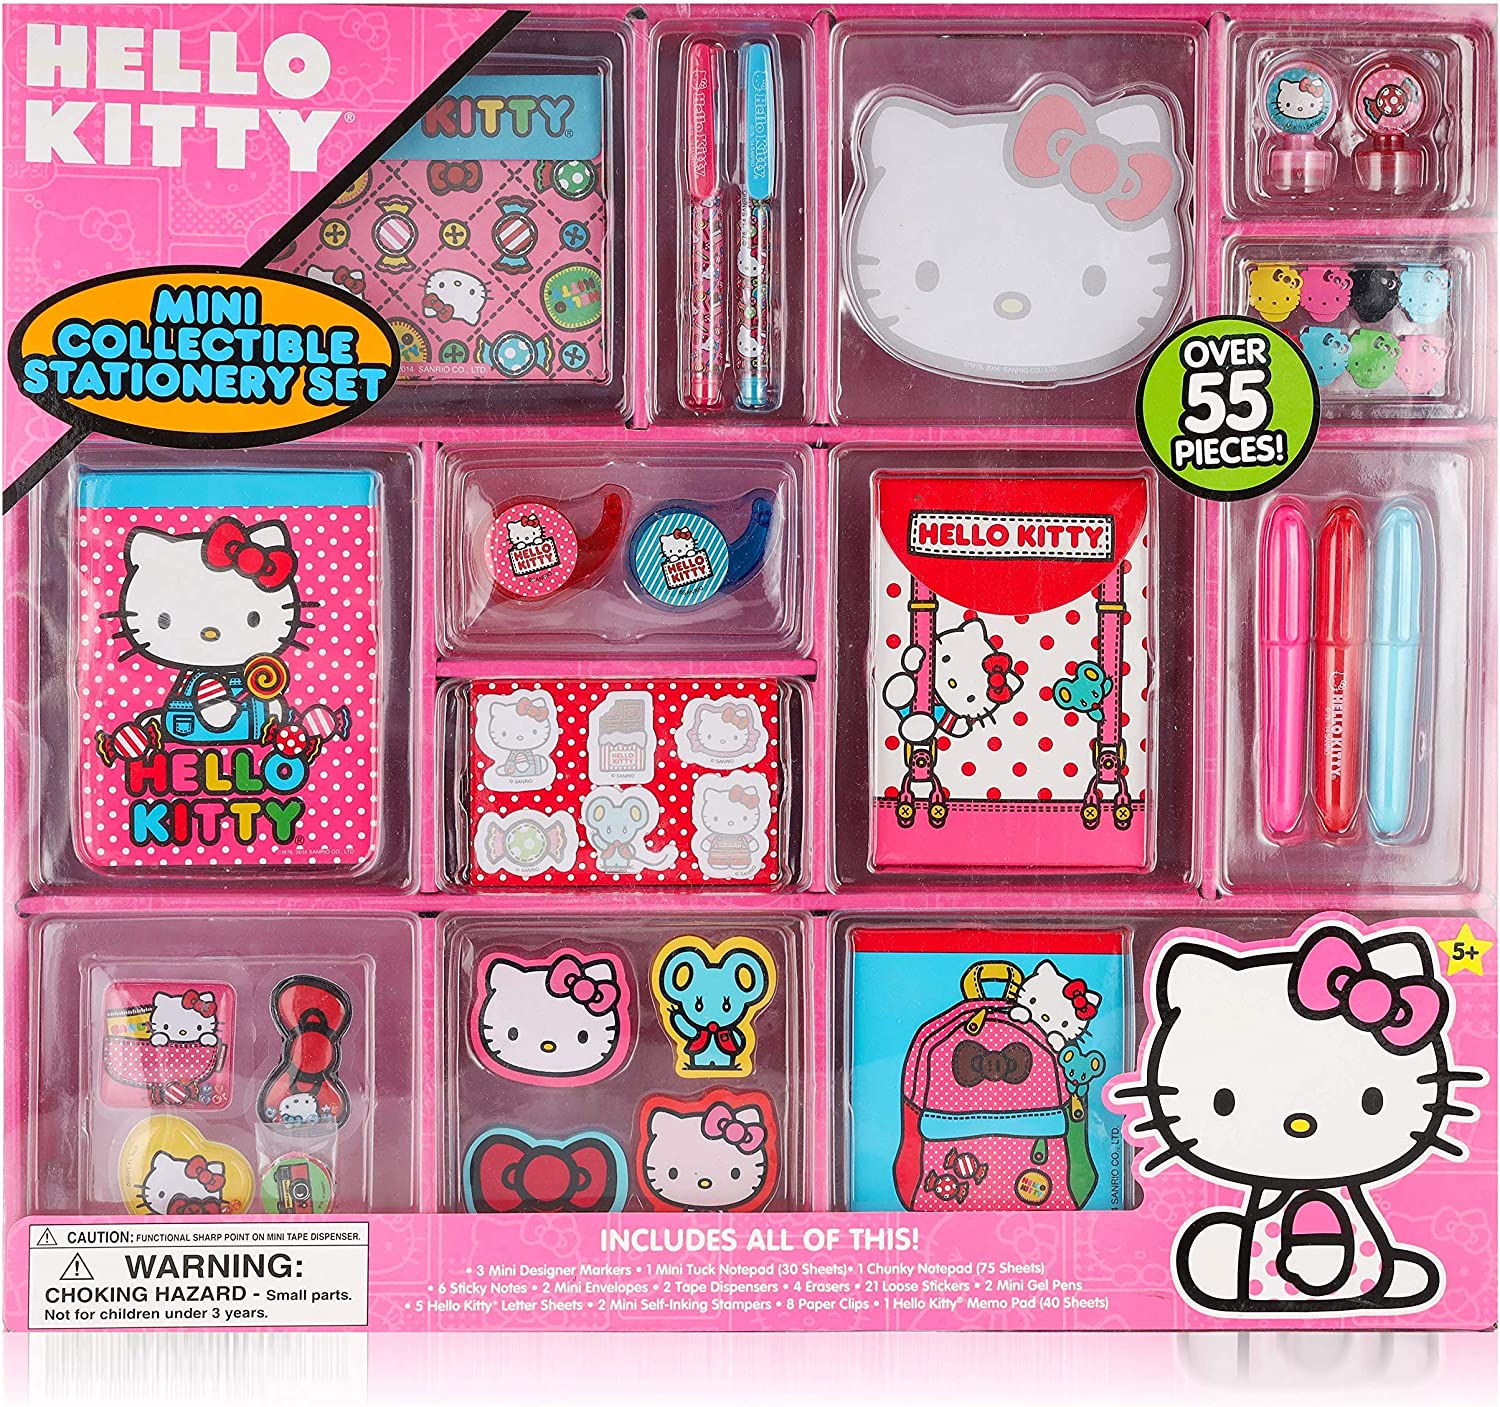 Hello Kitty Mini Collectible Stationary Set Fun Assortment of Over 55 Pieces - Stickers, Gel Pens and Stationary Perfect Gift for Every Girl